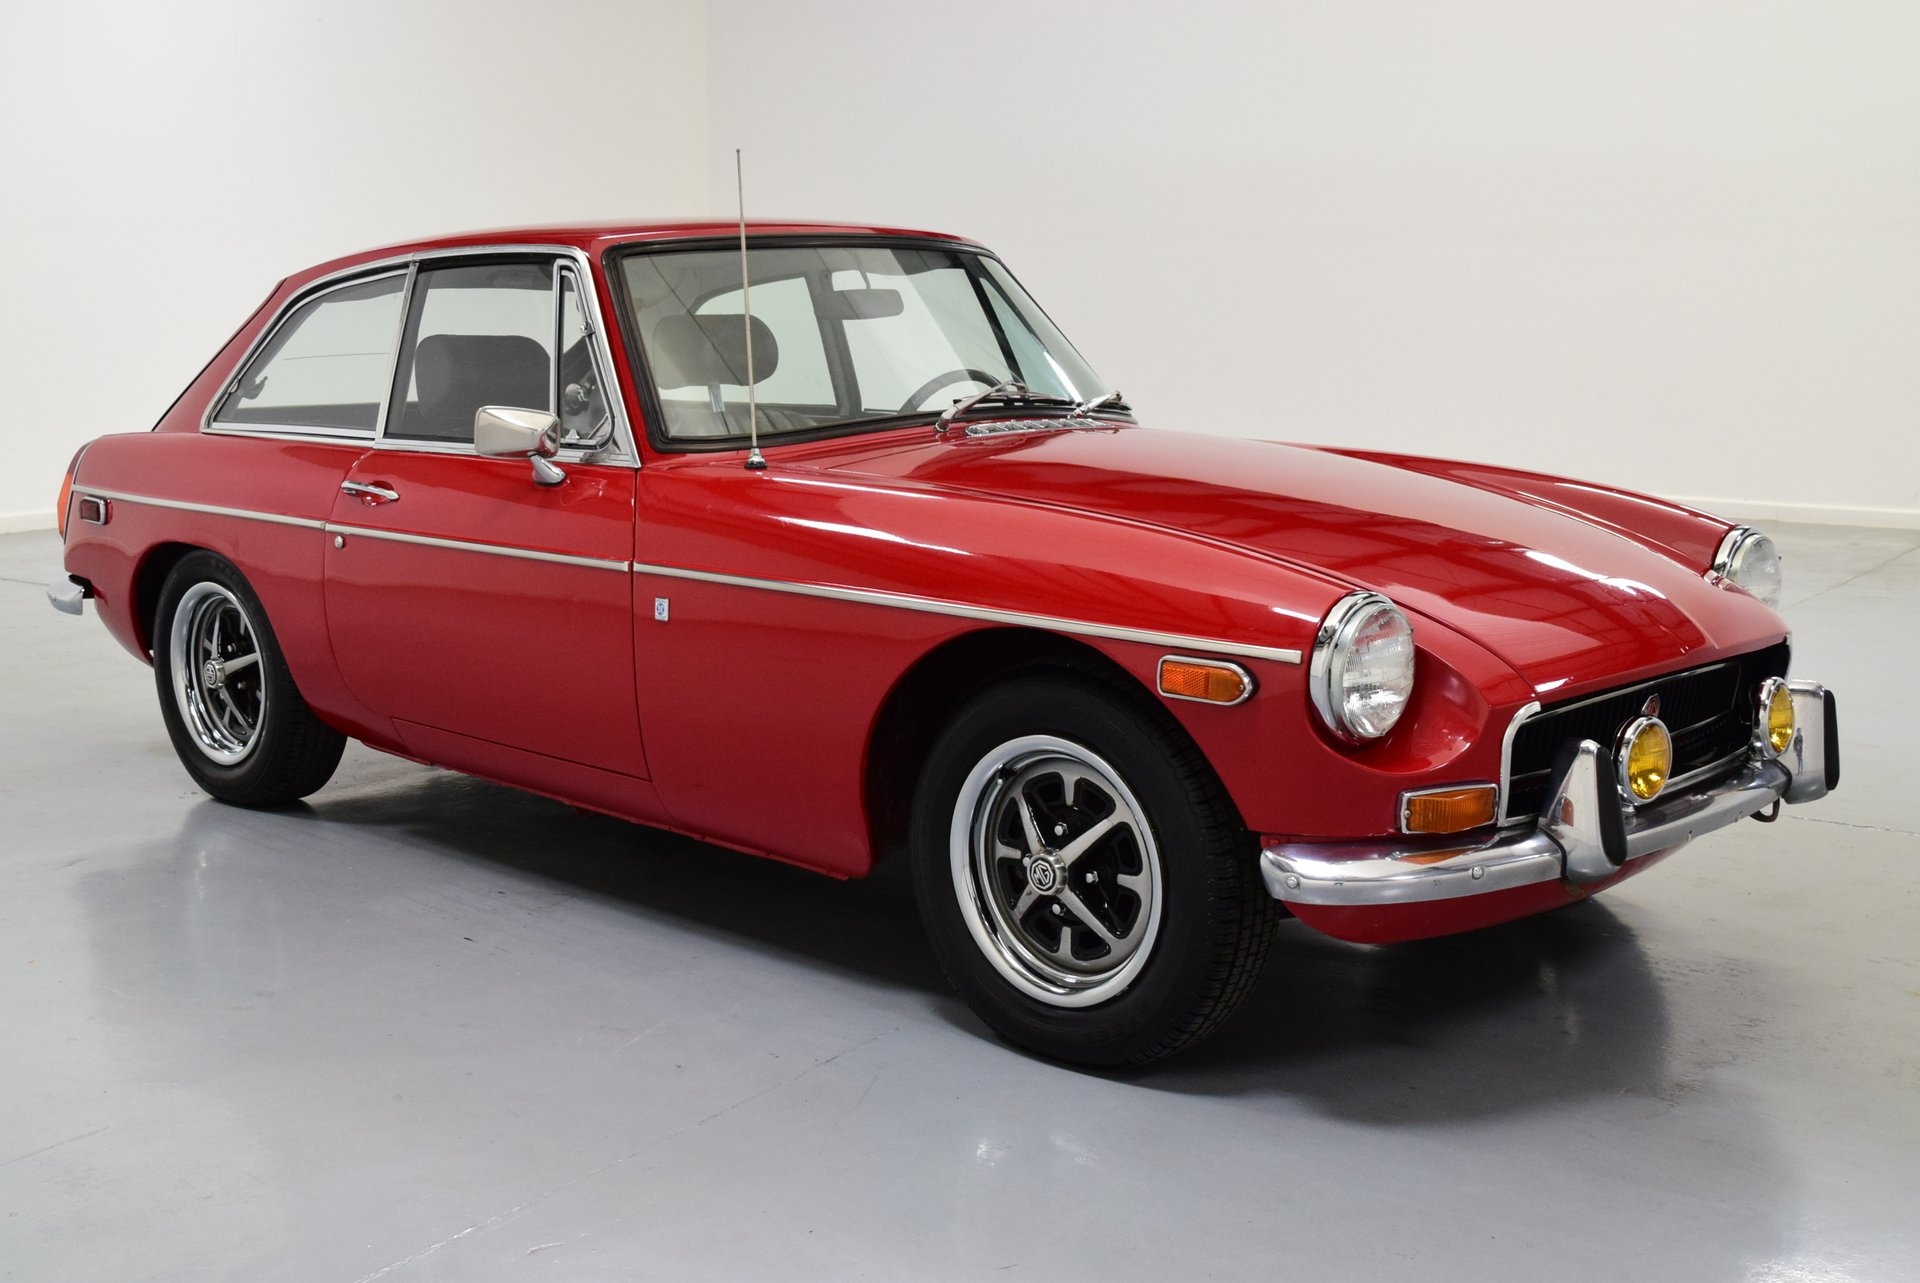 1972 MG MGB | Shelton Classics & Performance